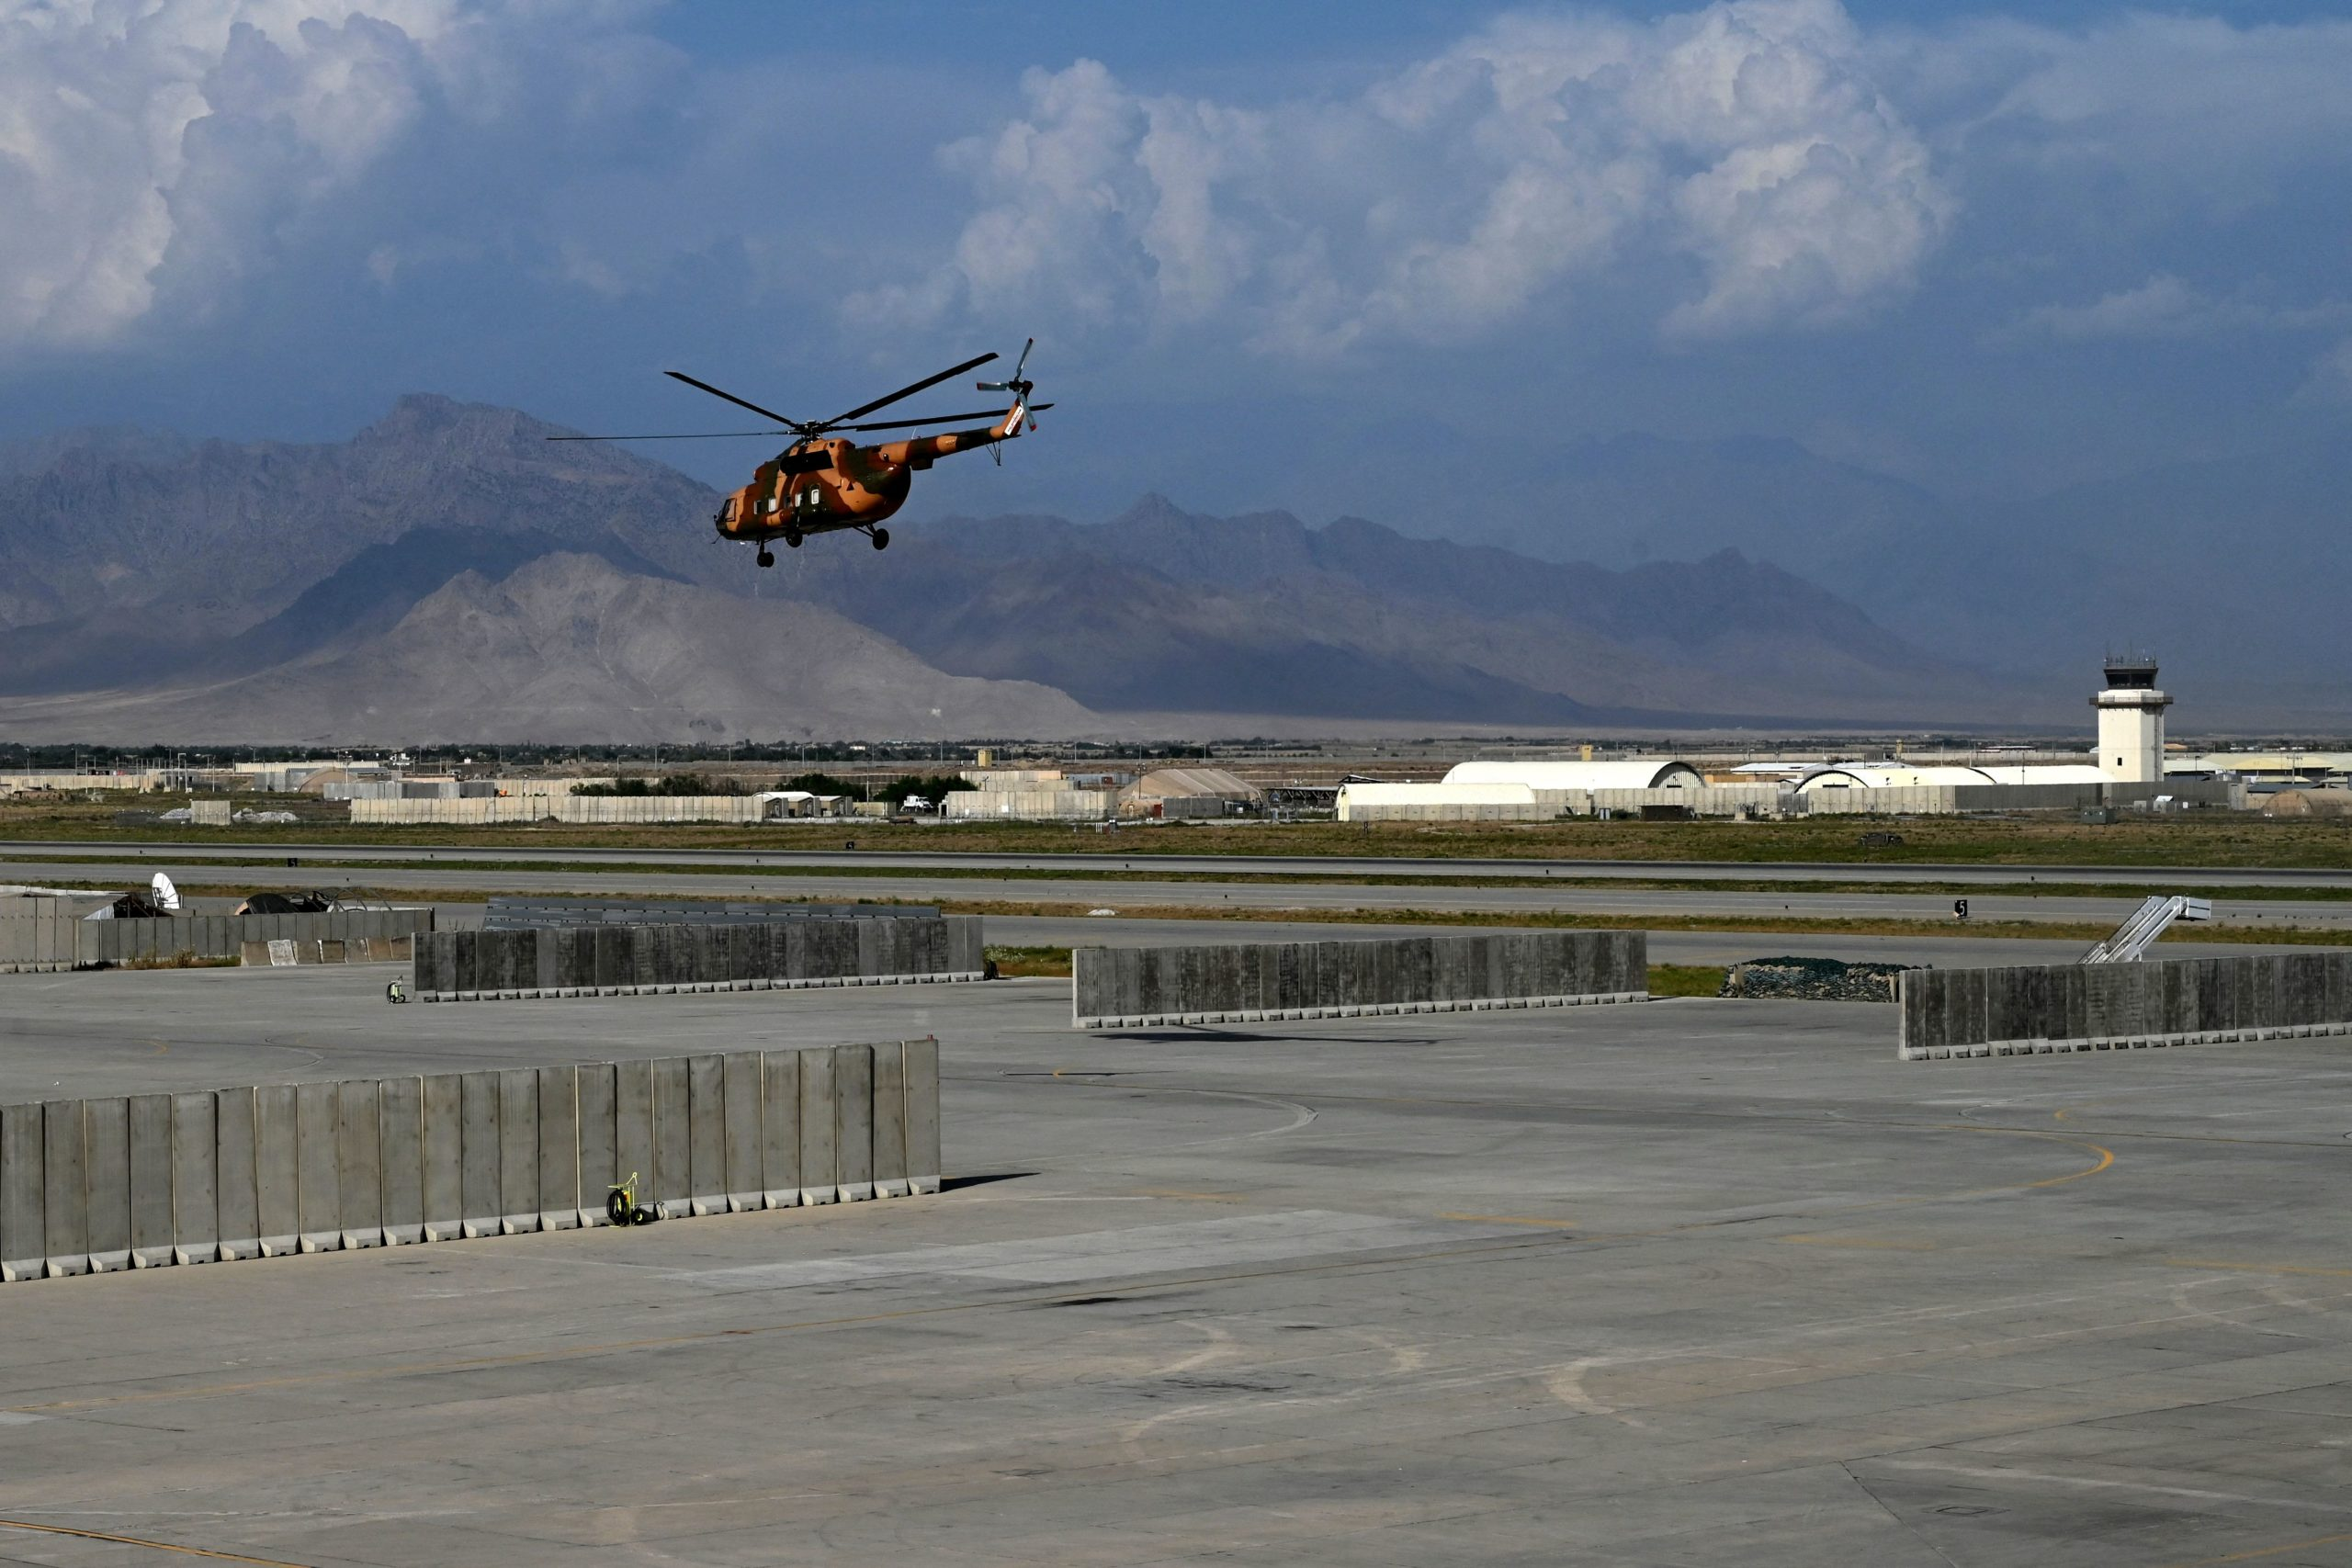 An Afghan National Army (ANA) helicopter takes off inside the Bagram US air base after all US and NATO troops left, some 70 Kms north of Kabul on July 5, 2021. (Photo by WAKIL KOHSAR / AFP) (Photo by WAKIL KOHSAR/AFP via Getty Images)